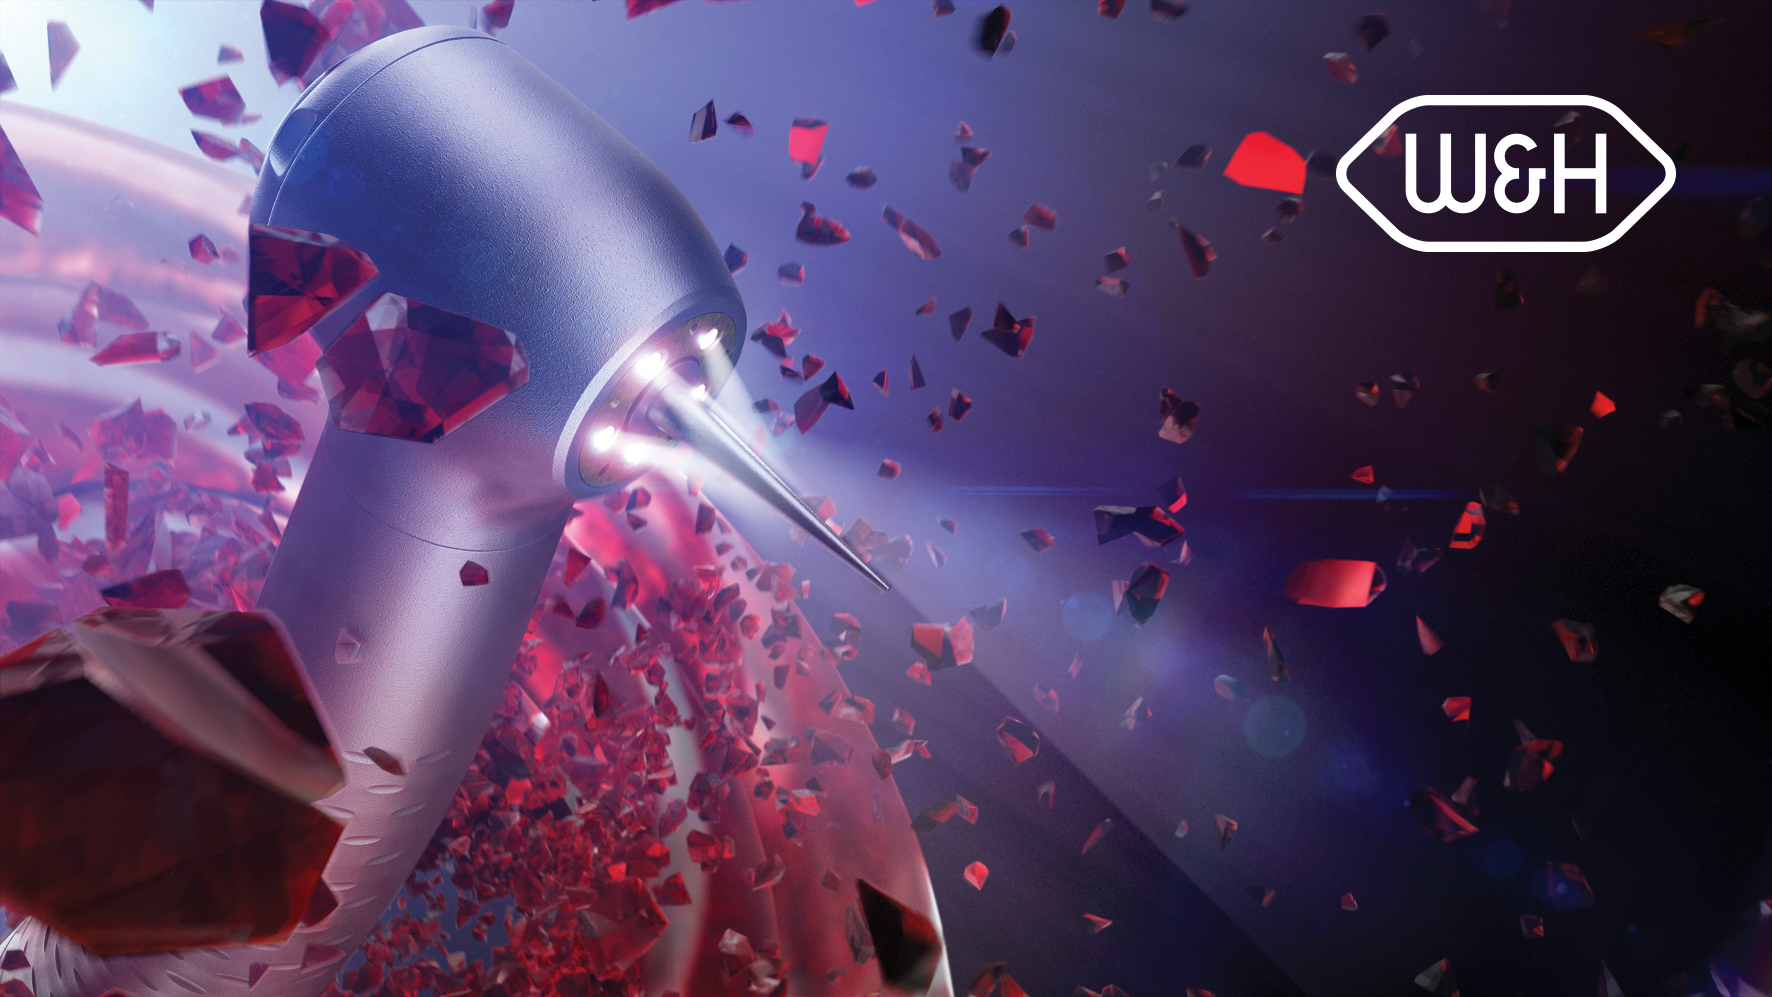 The new Synea Vision turbine with 5x ring LED+ shows that W&H is the technological leader in the LED sector for dental instruments. Dentists benefit from a completely shadow-free view of the treatment field for the first time.